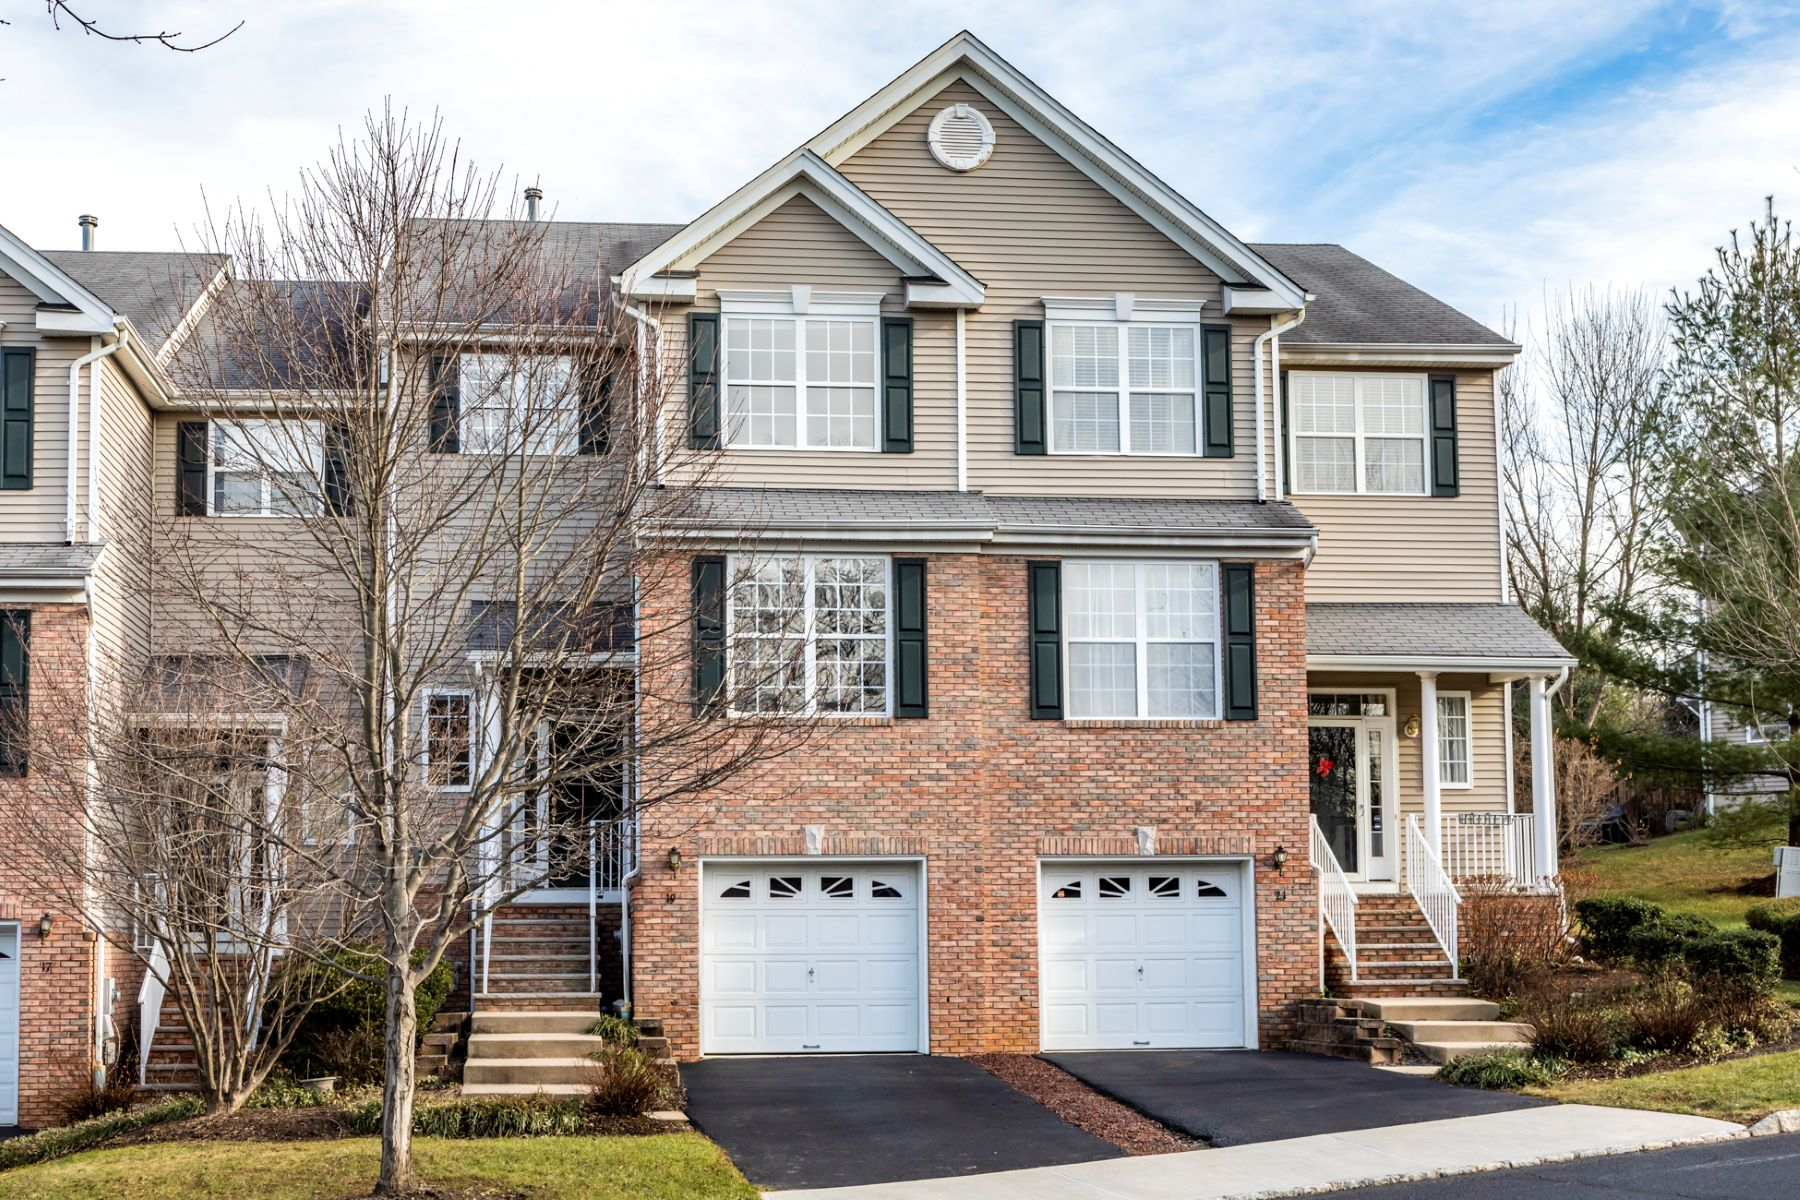 Townhouse for Sale at Value-Packed With Loads Of Possibility 19 Jackson Avenue, Princeton, New Jersey 08540 United States